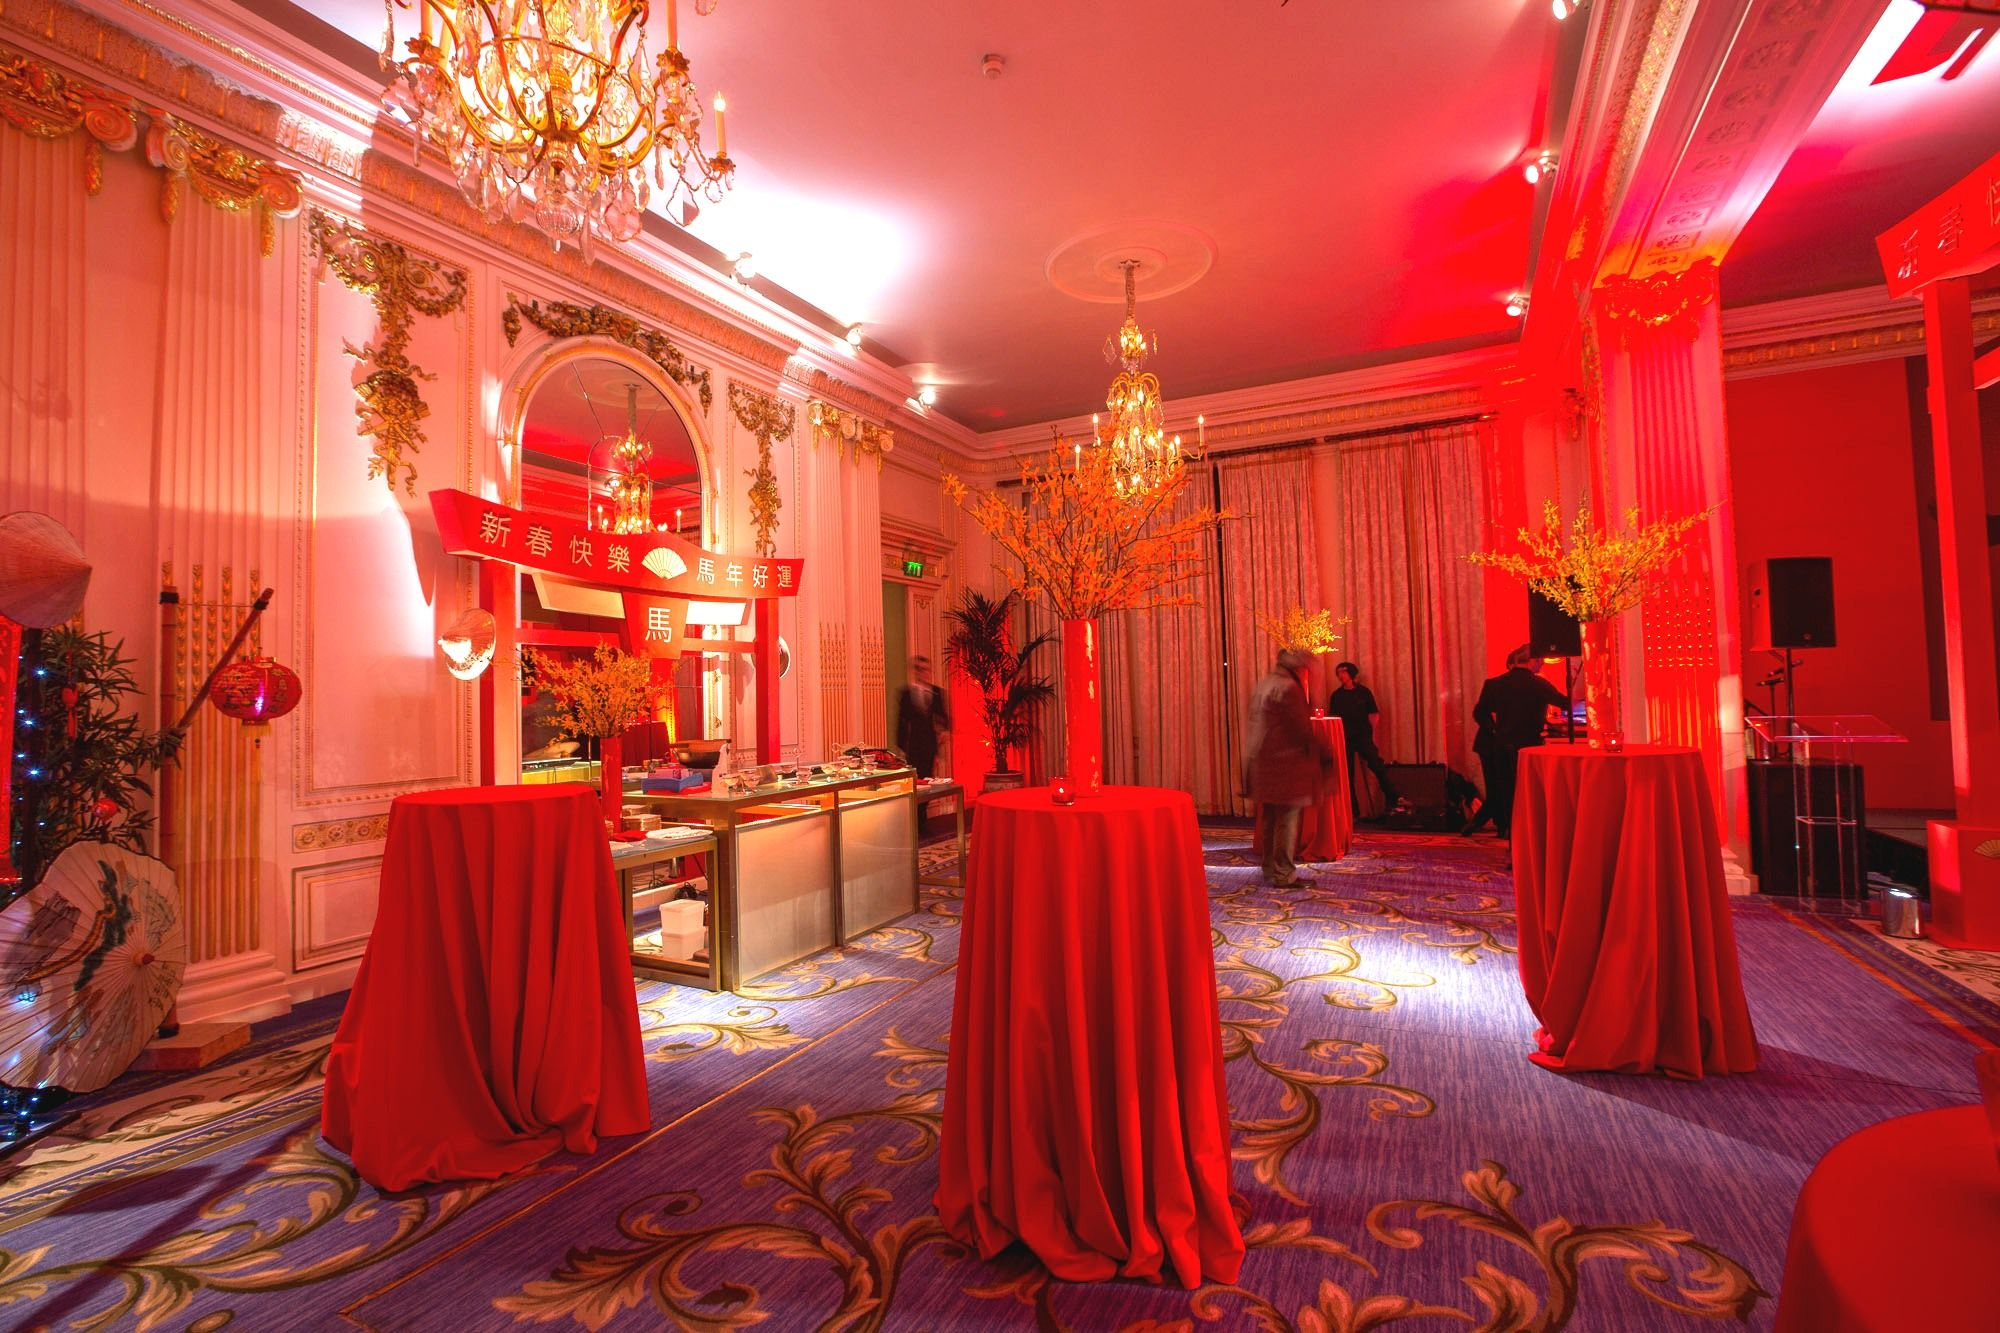 Chinese New Year set up in the Ballroom Hotel venues